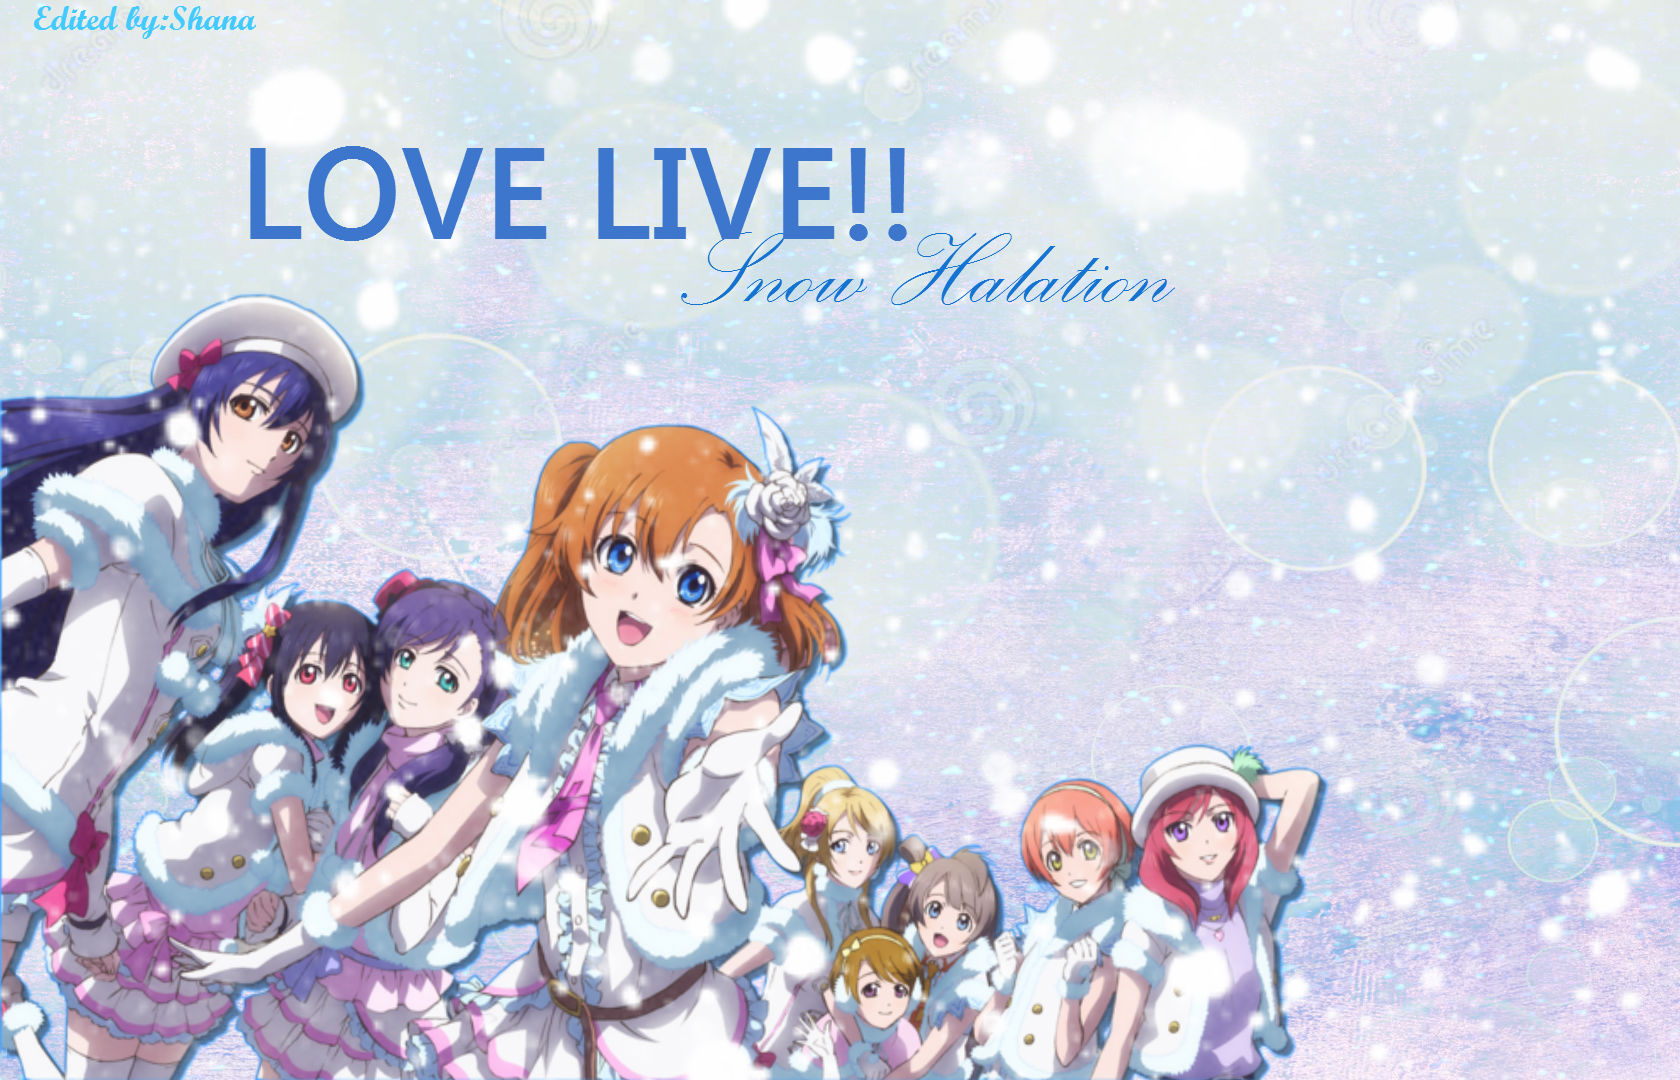 Love Live Snow Halation Wallpaper by LillyDah on DeviantArt